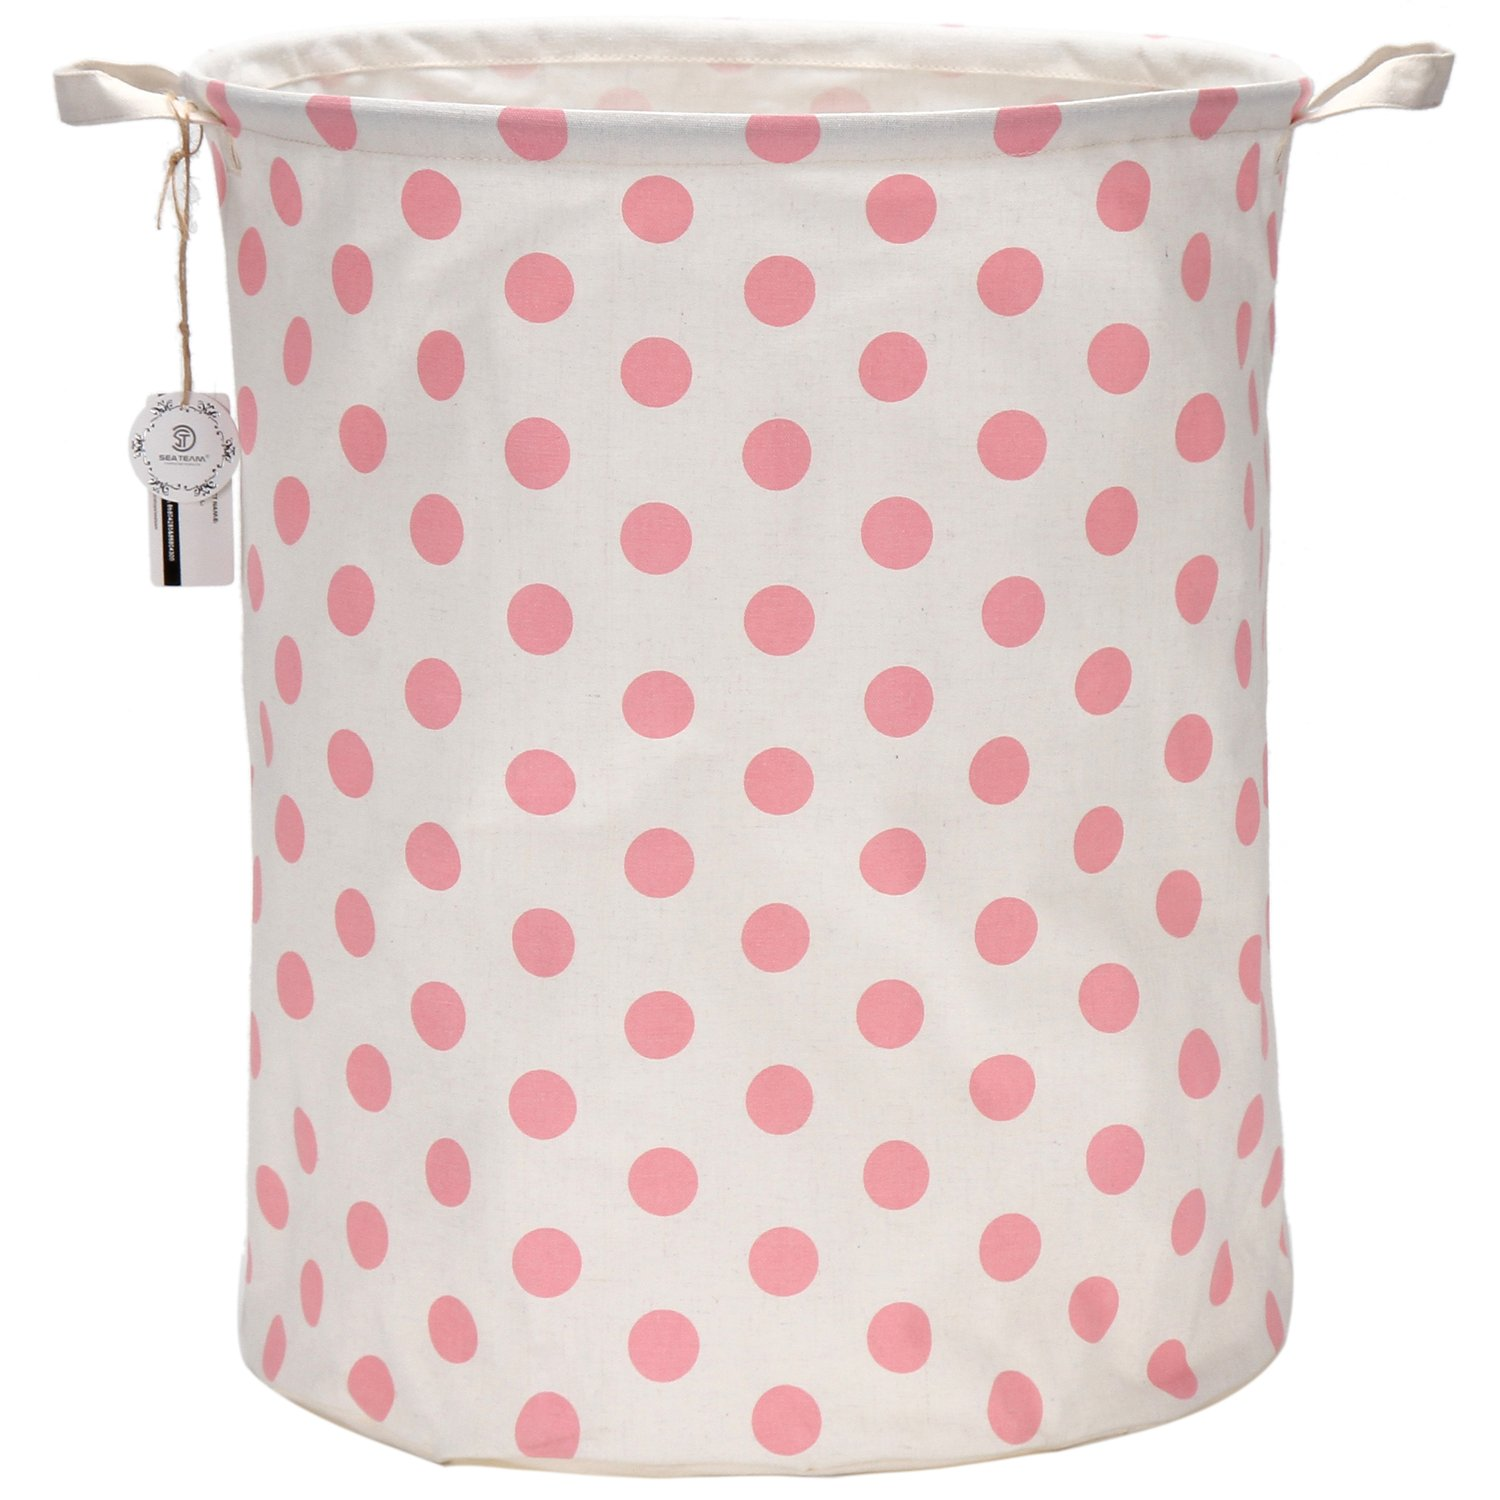 "Sea Team 19.7"" Large Sized Waterproof Coating Ramie Cotton Fabric Folding Laundry Hamper Bucket Cylindric Burlap Canvas Storage Basket with Stylish Pink & White Polka Dot Design"